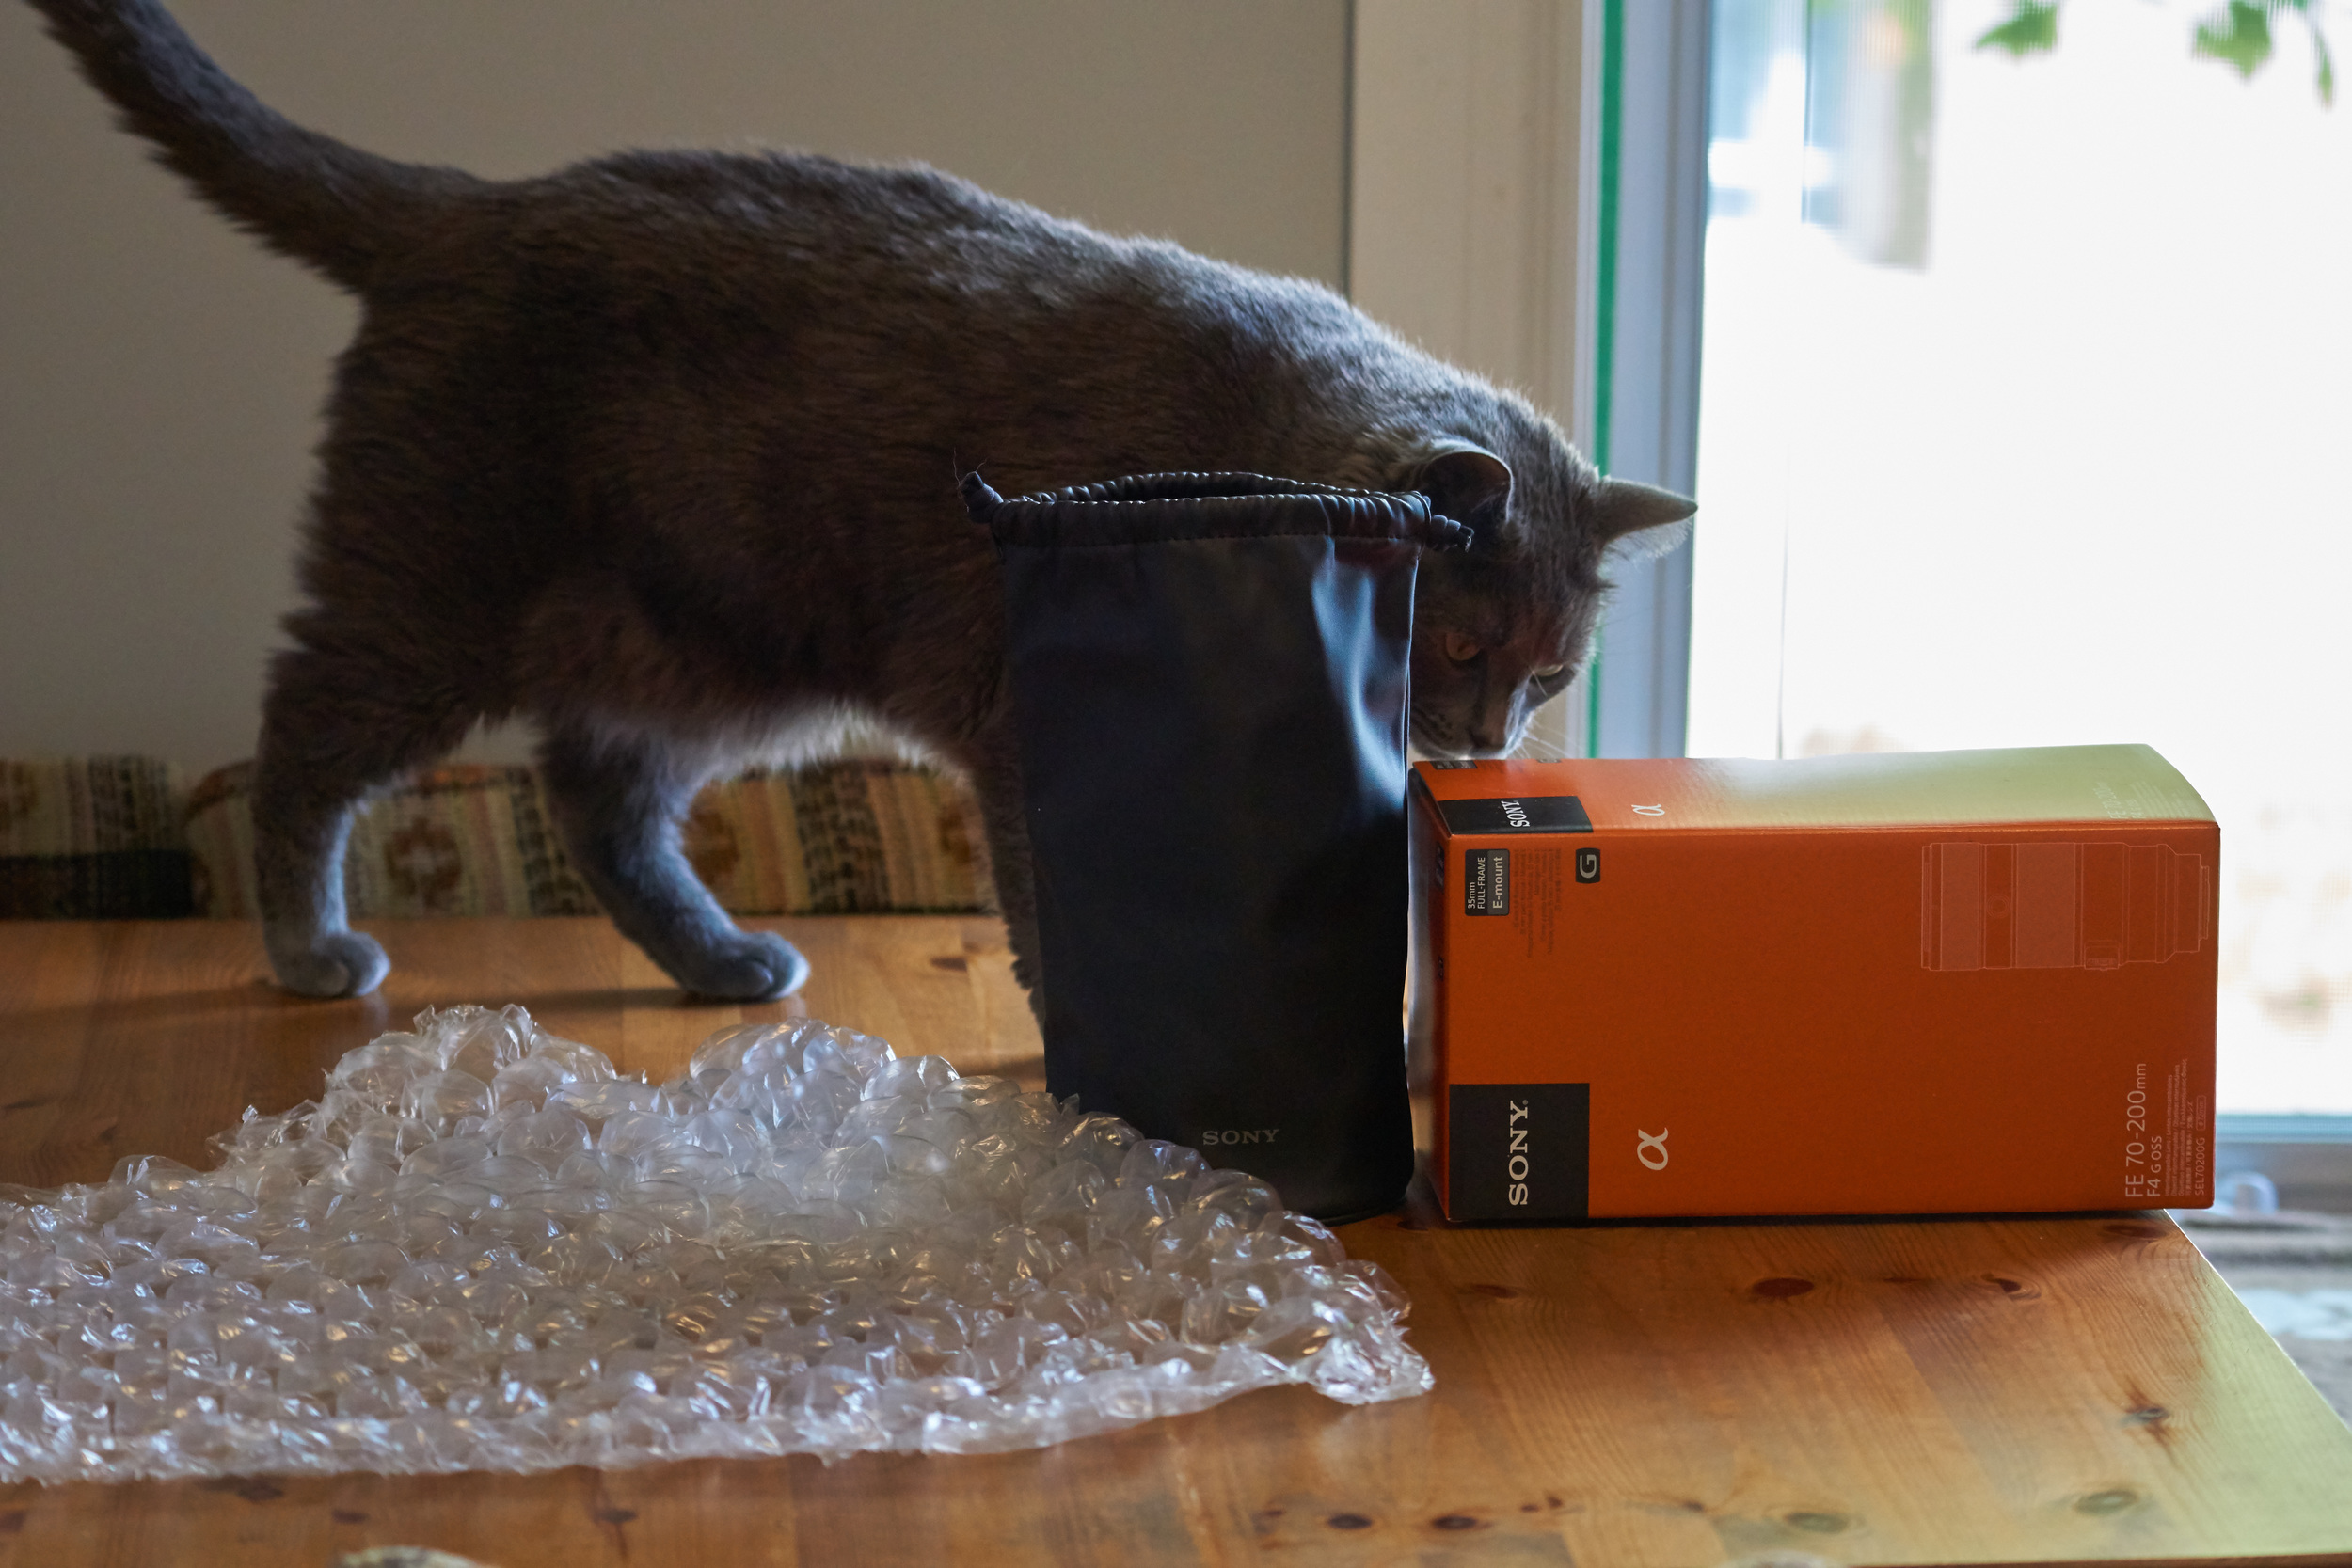 The only thing better than an unboxing is a cat unboxing.